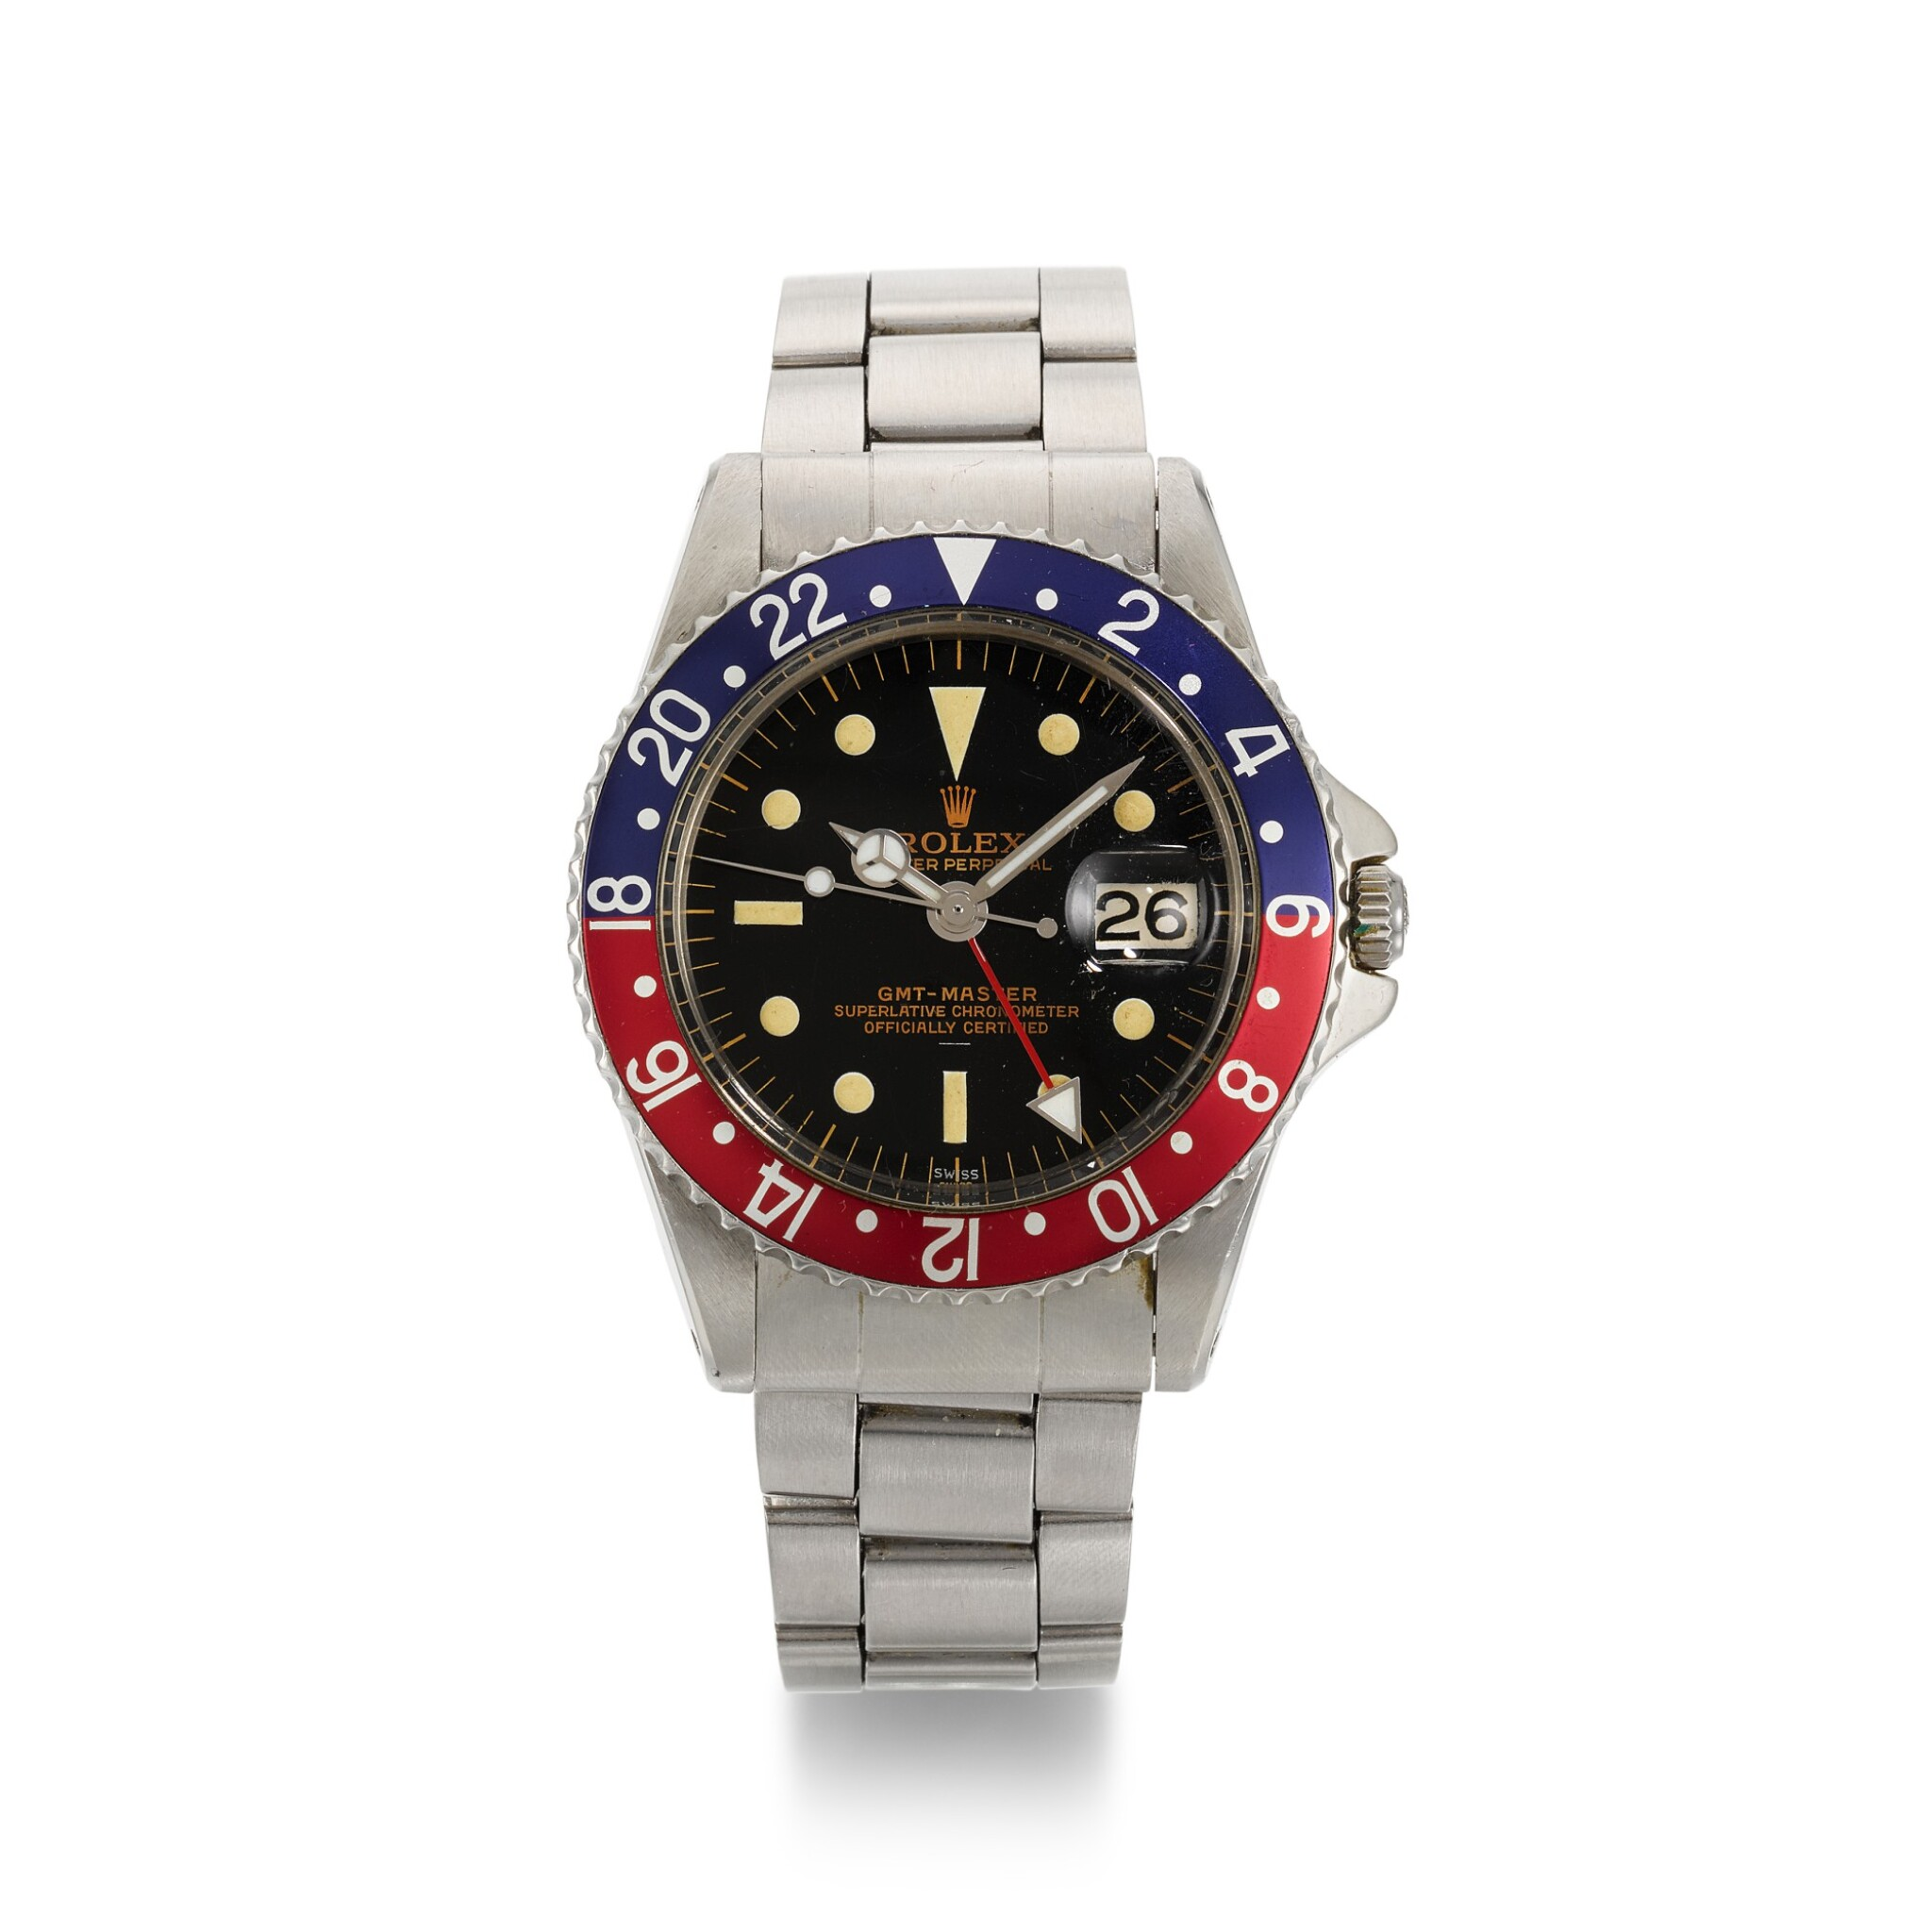 View full screen - View 1 of Lot 338. ROLEX | GMT-MASTER POINTED CROWN GUARDS, UNDERLINE, DOUBLE SWISS, REF 1675, STAINLESS STEEL DUAL-TIME WRISTWATCH WITH DATE AND BRACELET, CIRCA 1963.